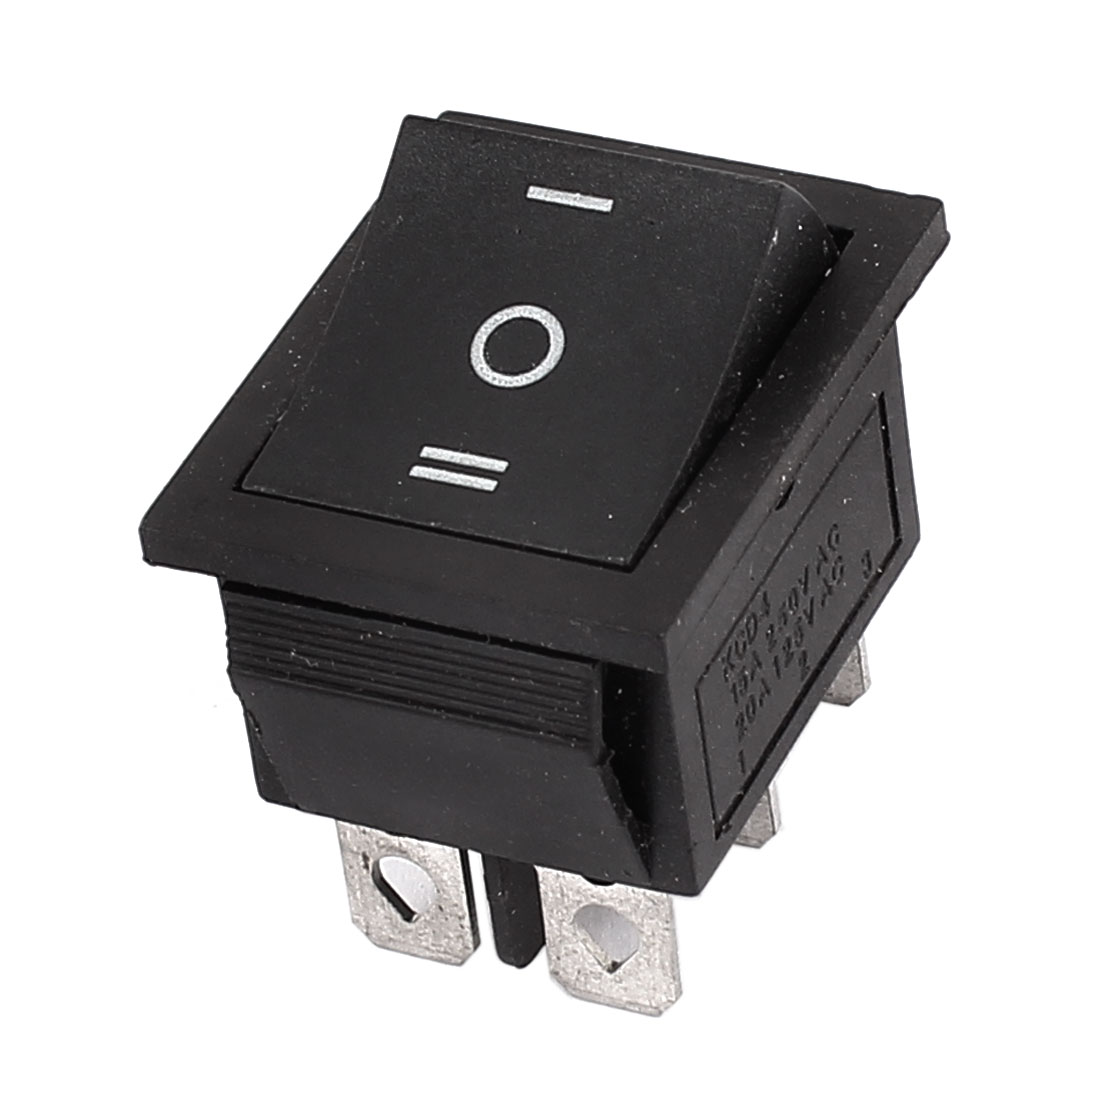 DPDT 3 Position Boat Rocker Switch 15A 250VAC 20A 125V Black